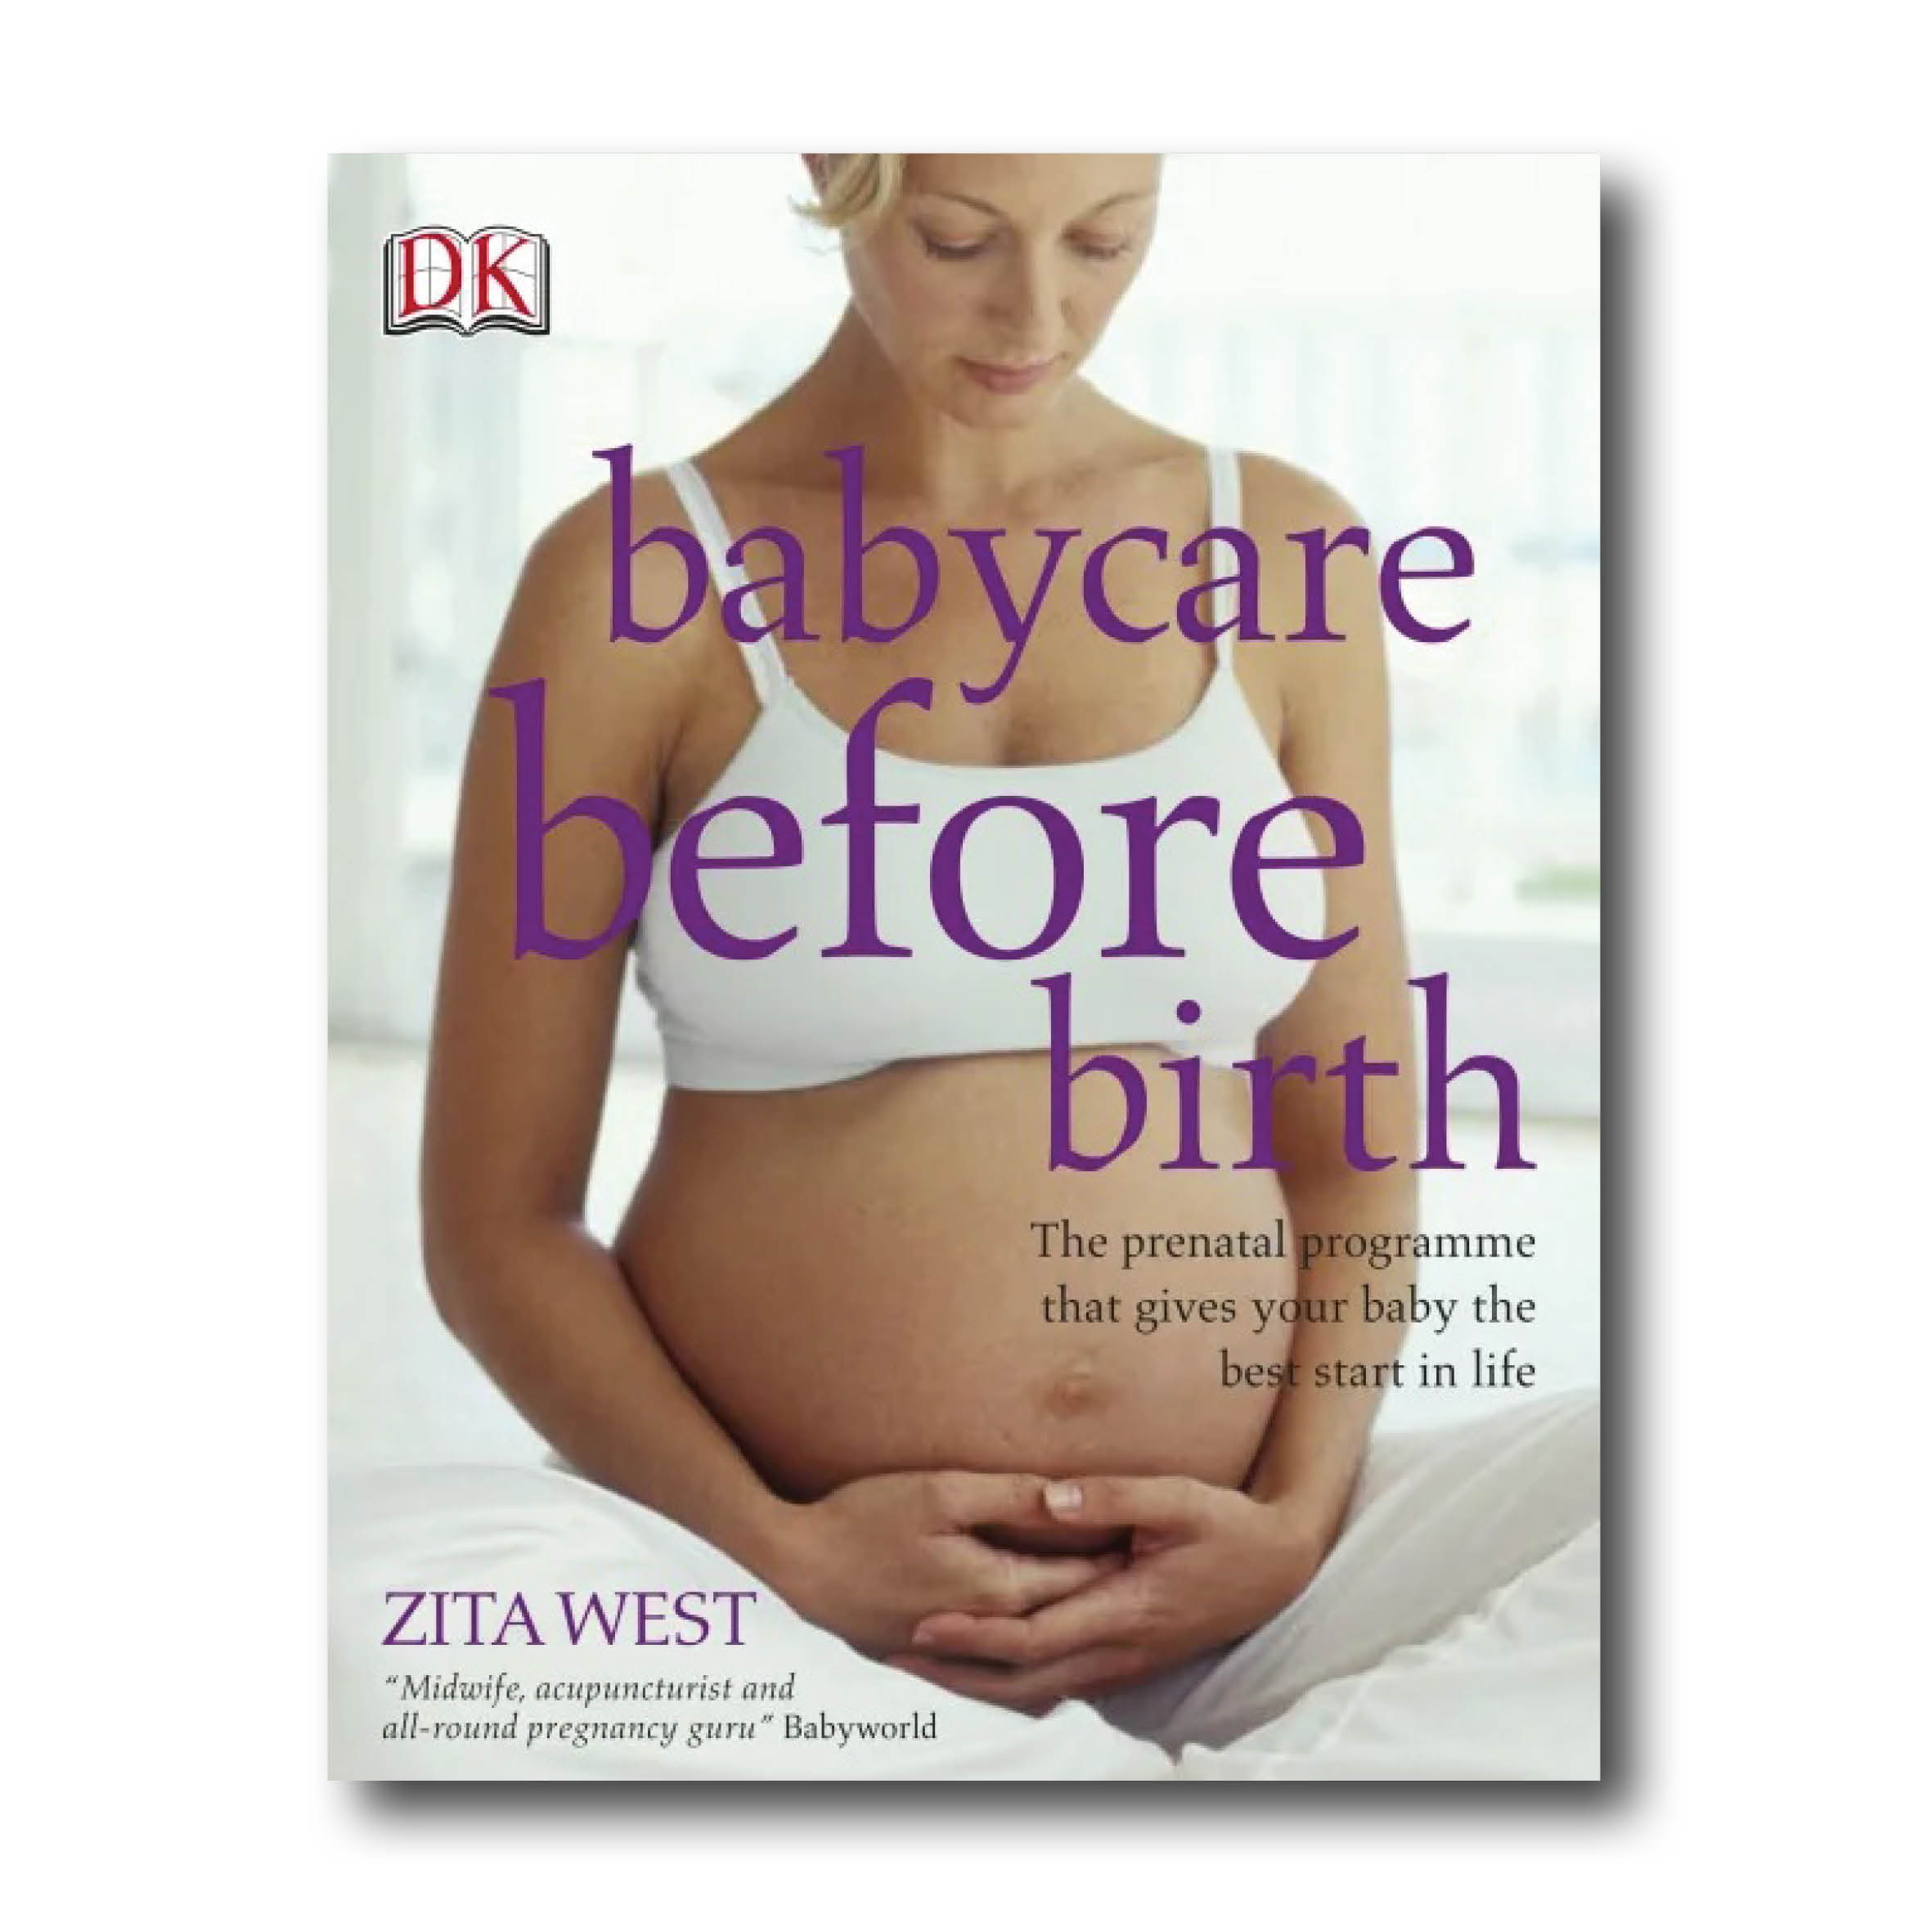 West Z 2006 Babycare before birth London Dorling Kindersley_